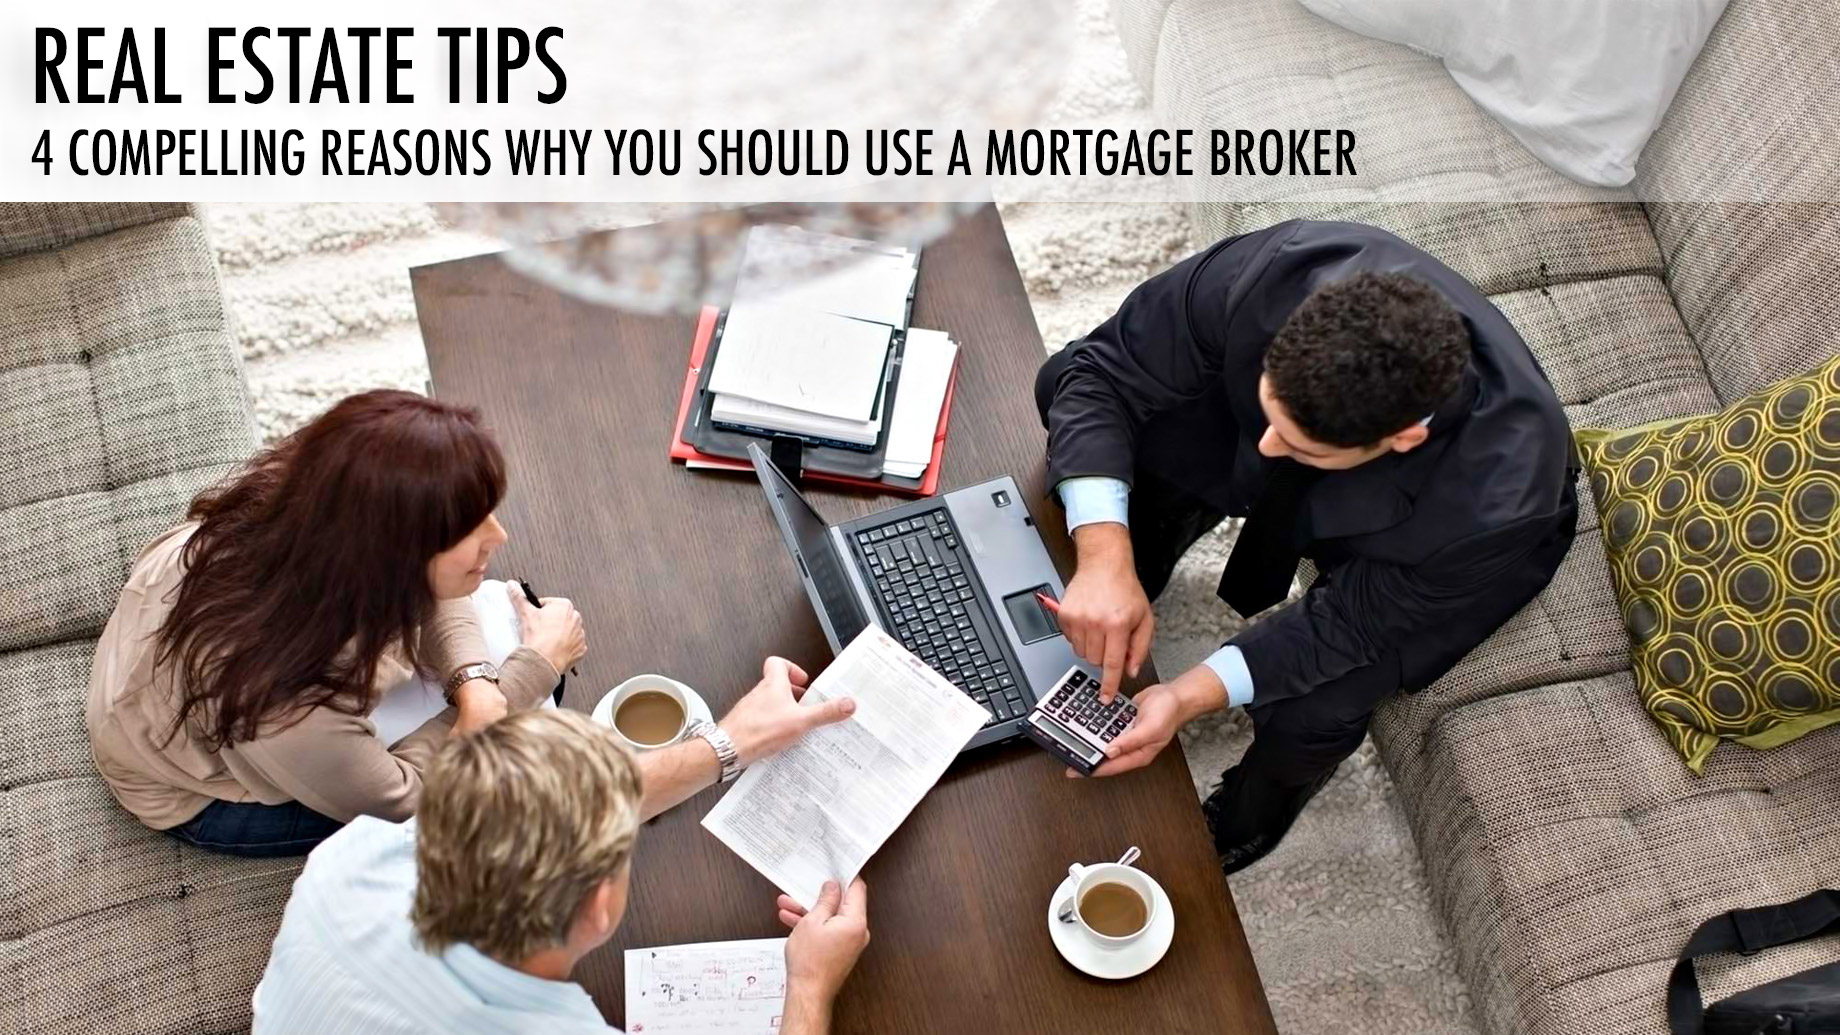 Real Estate Tips - 4 Compelling Reasons Why You Should Use a Mortgage Broker